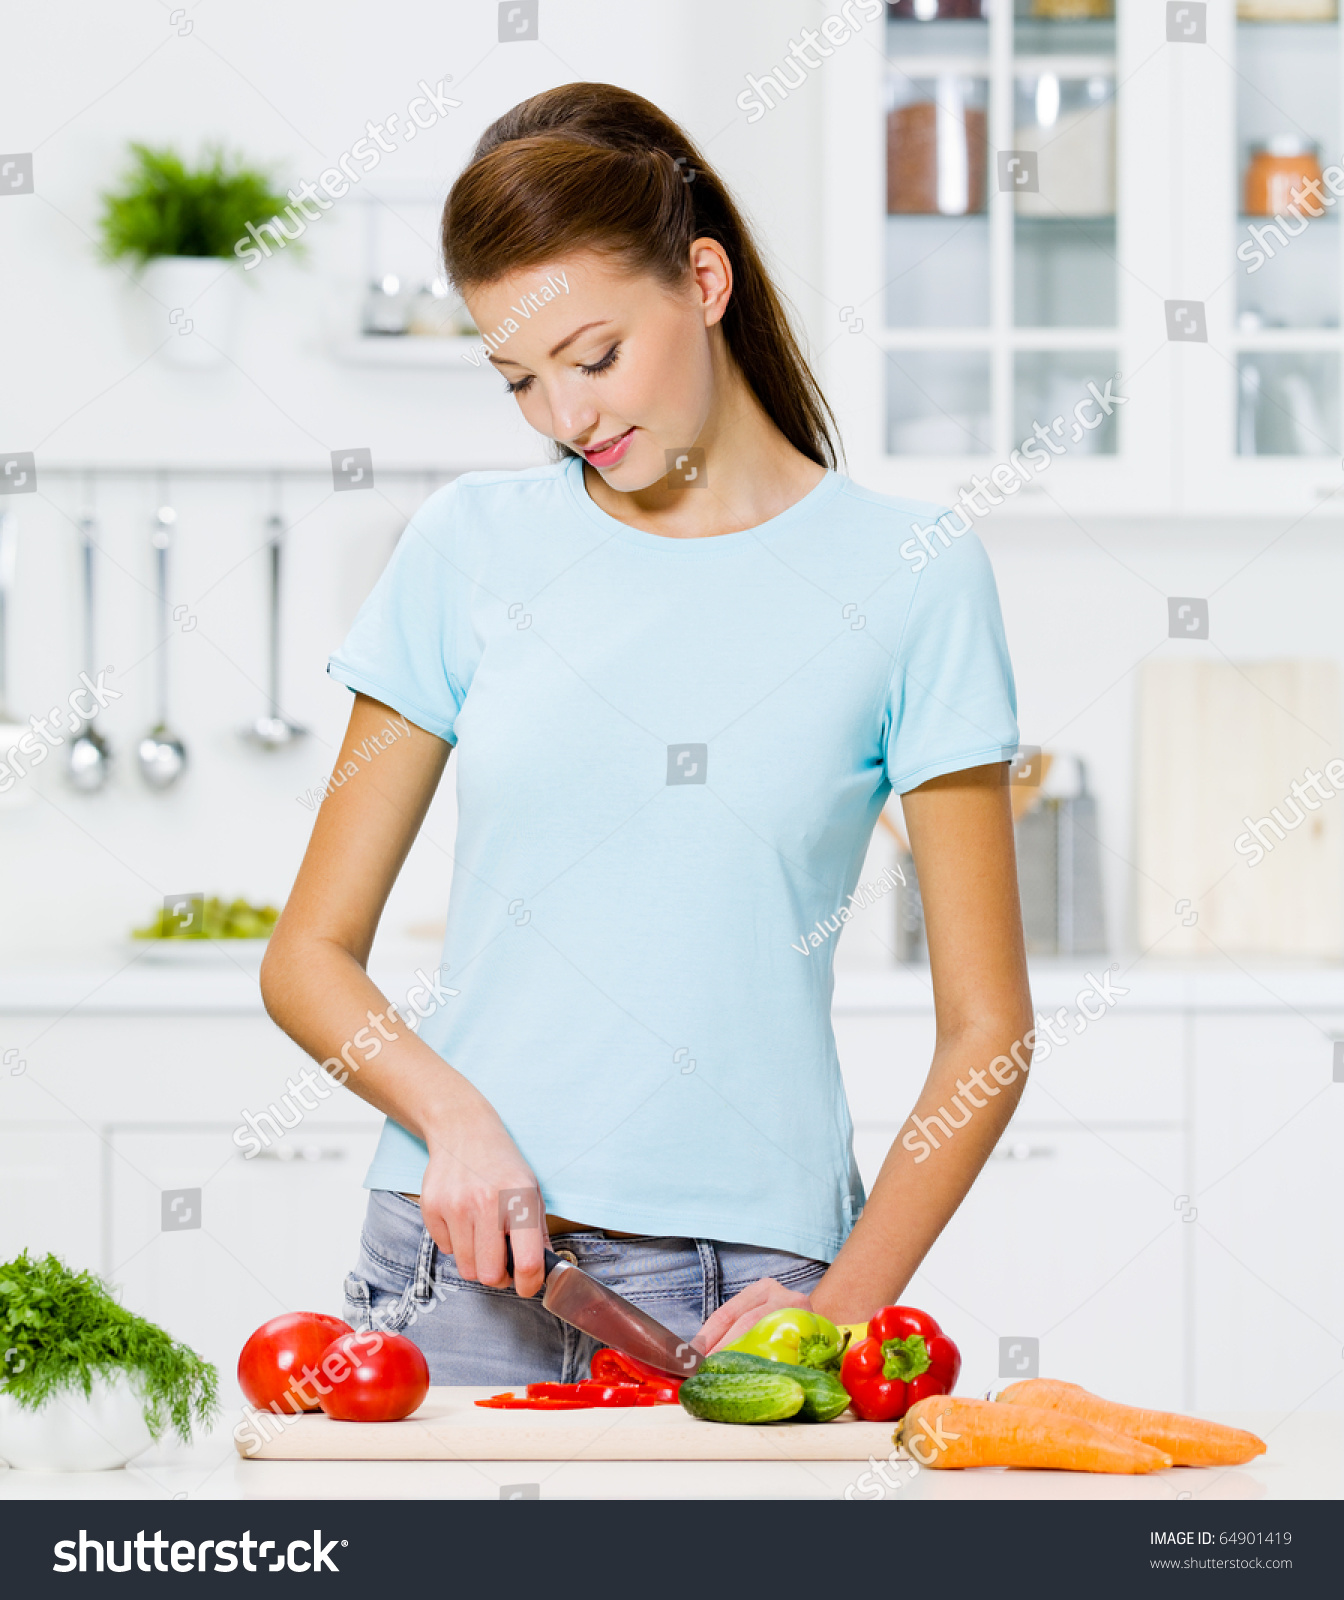 Women Kitchen: Beautiful Woman Cooking Healthy Food In The Kitchen